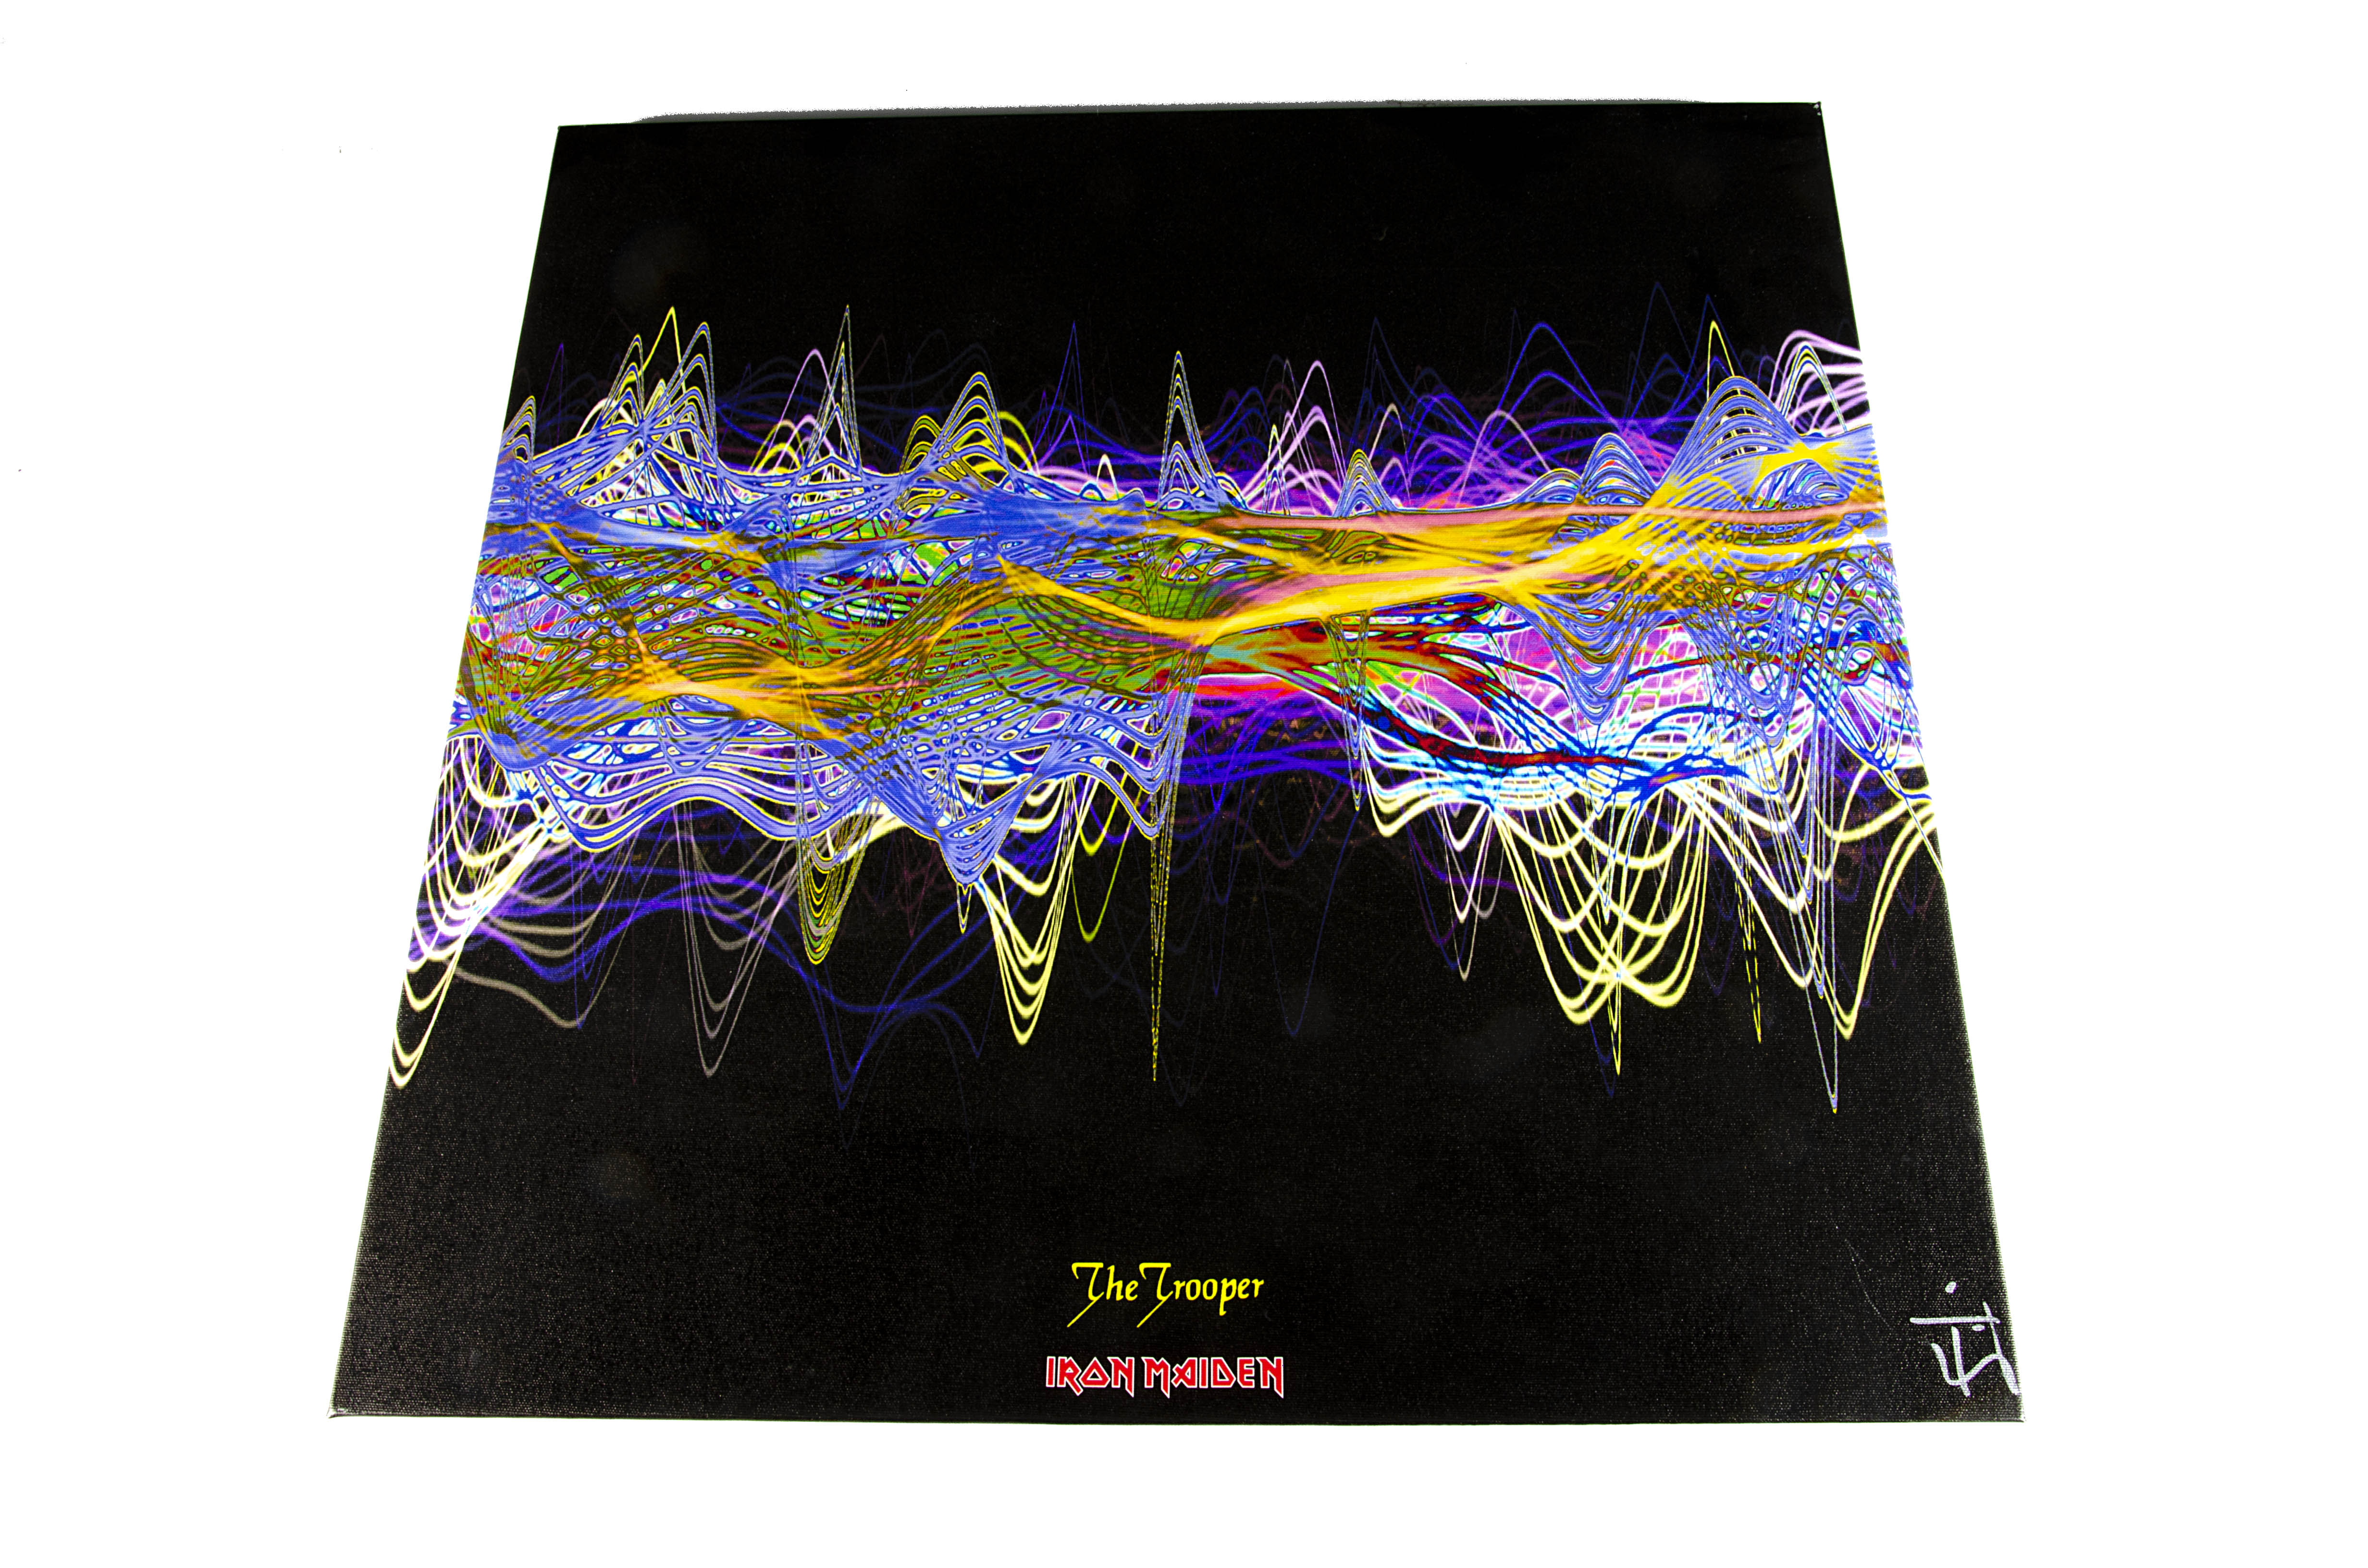 Iron Maiden Soundwaves Print, The Trooper - Original Soundwaves art created from the audio of the